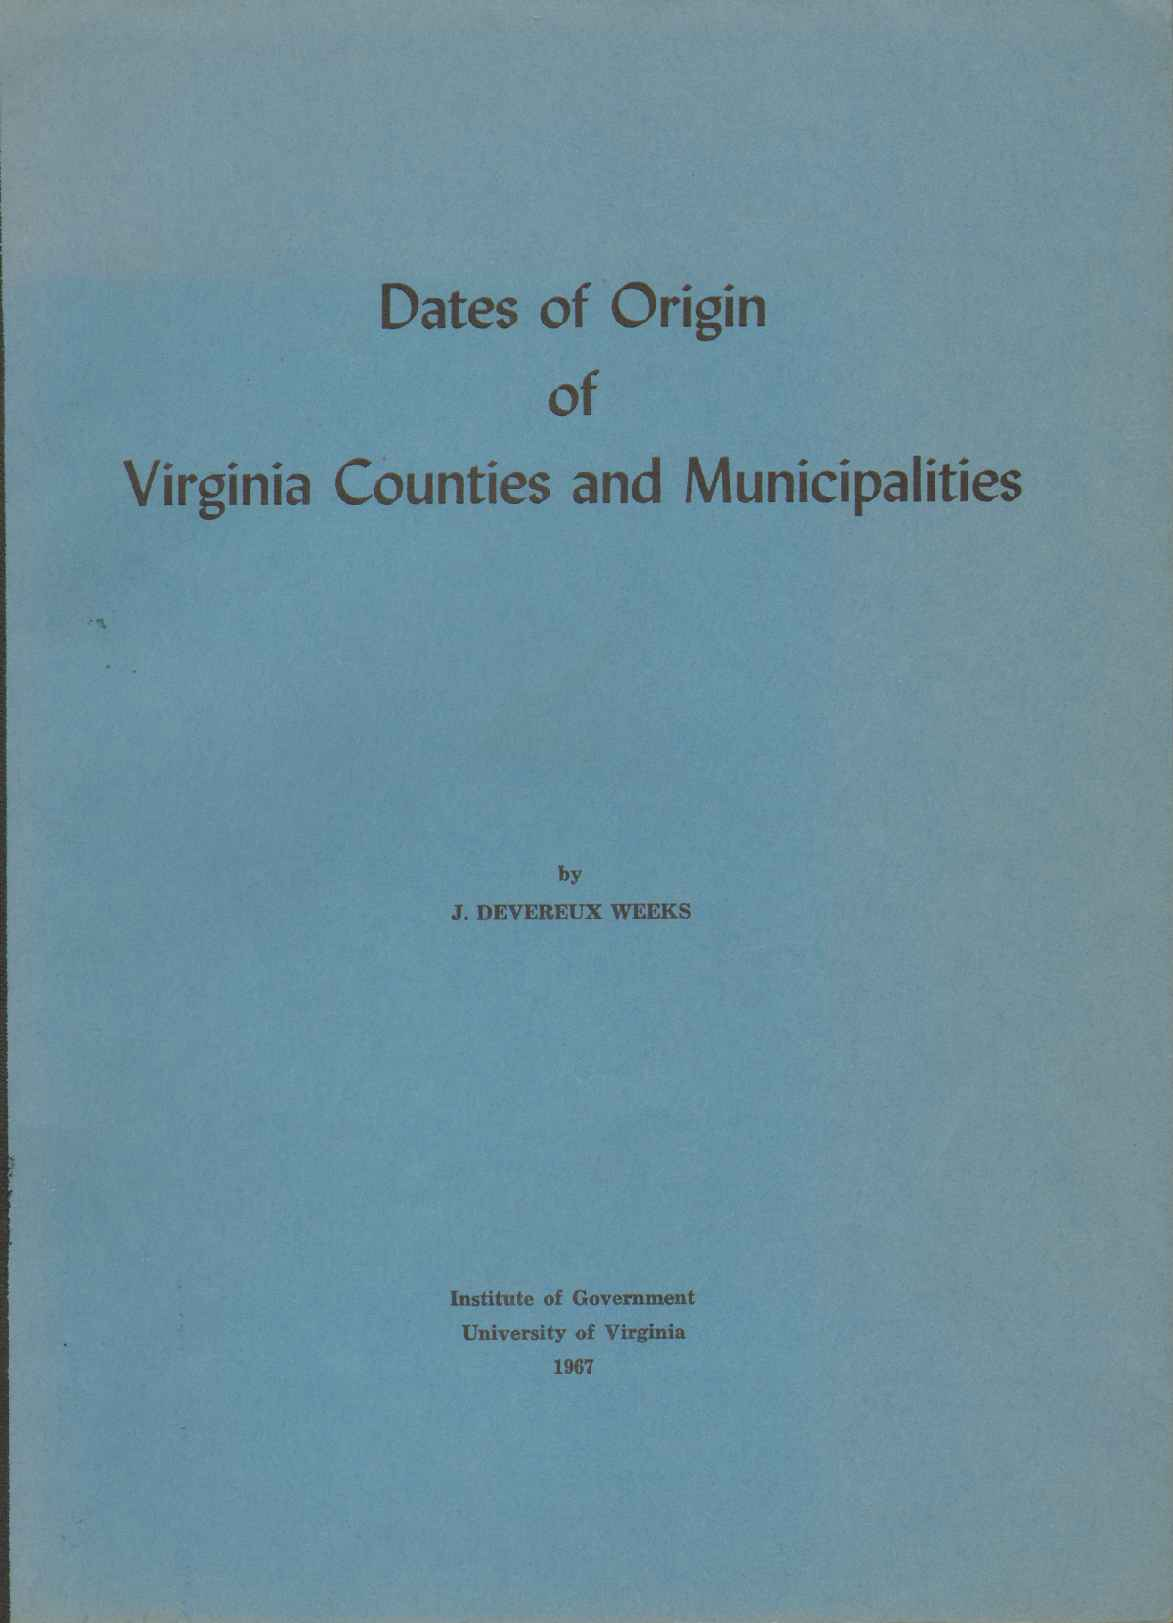 Image for DATES OF ORIGIN OF VIRGINIA COUNTIES AND MUNICIPALITIES,